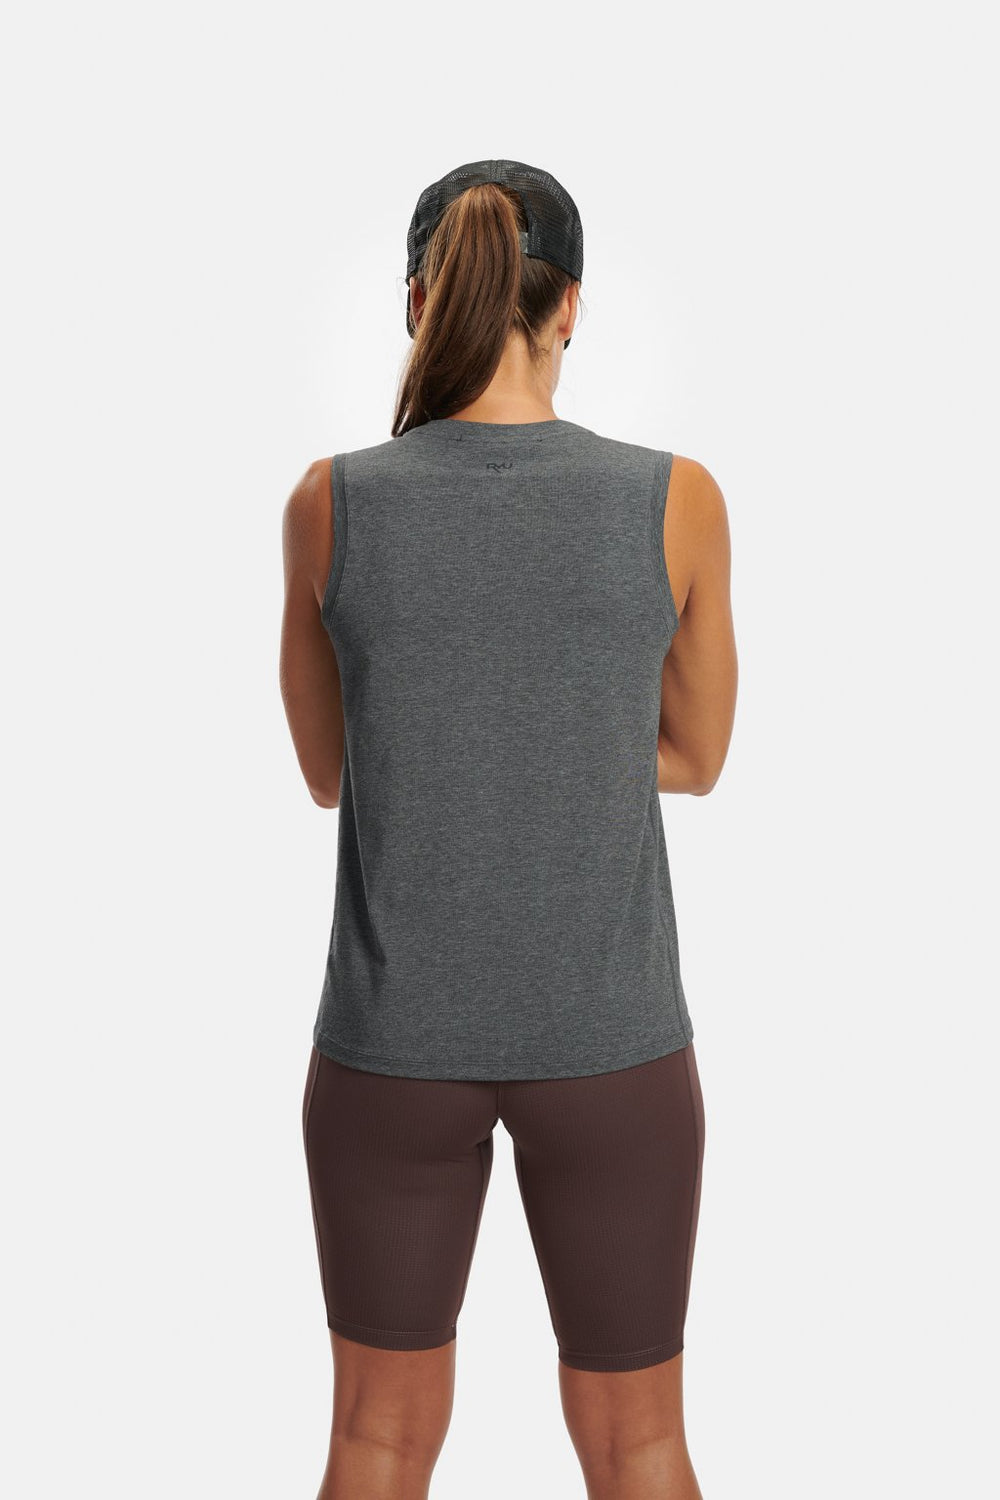 RYU Womens Standard Issue Tank in